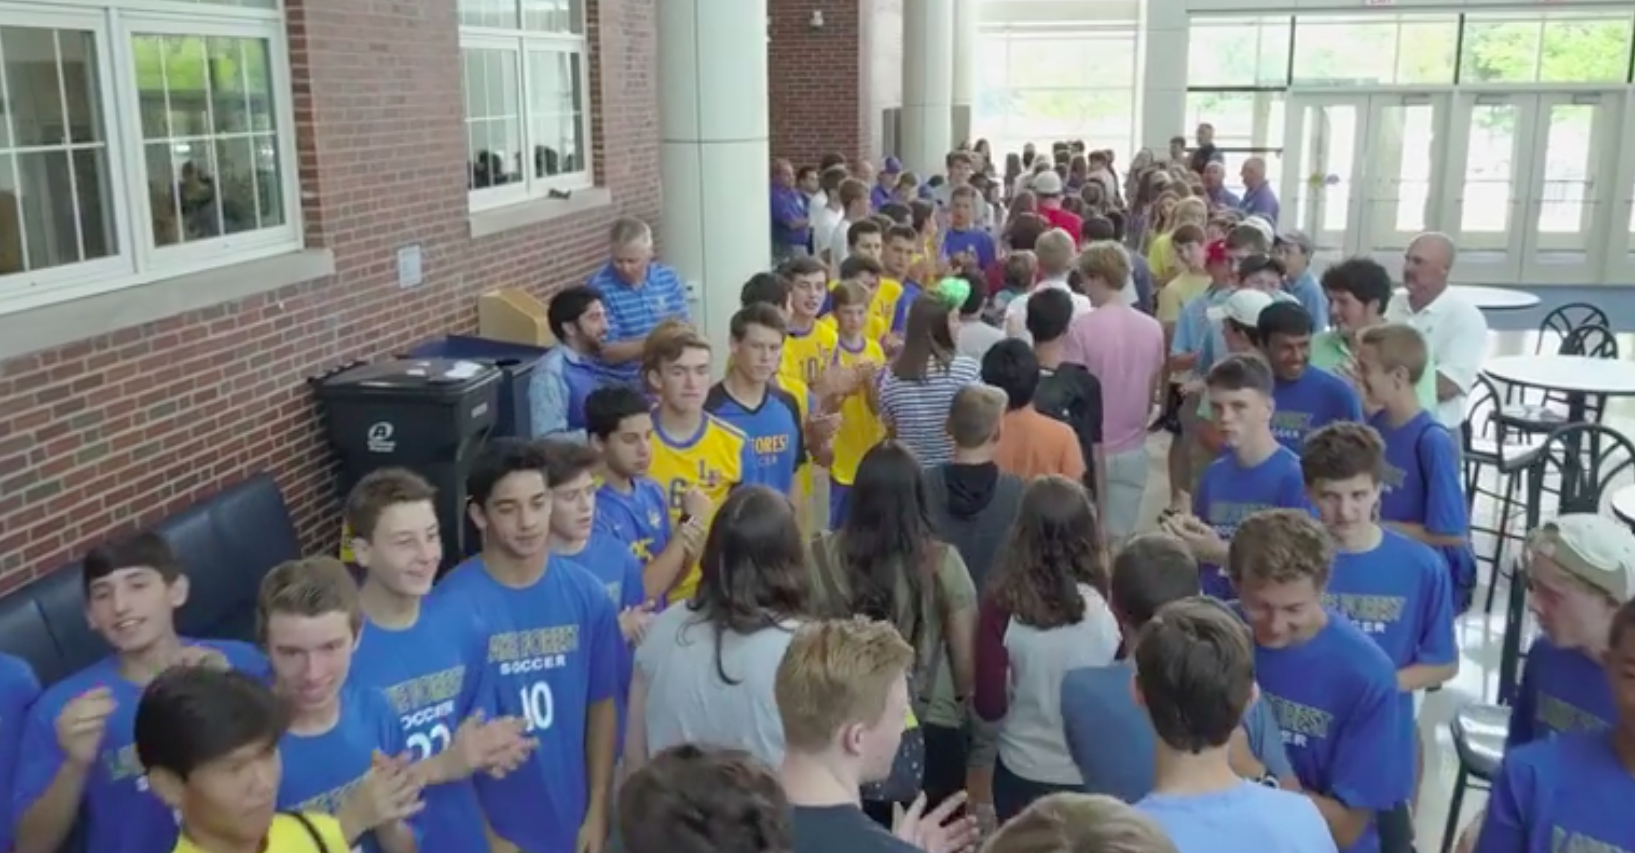 The Freshmen Clap In was started in reaction to a wave of student suicides that shook the LFHS community.